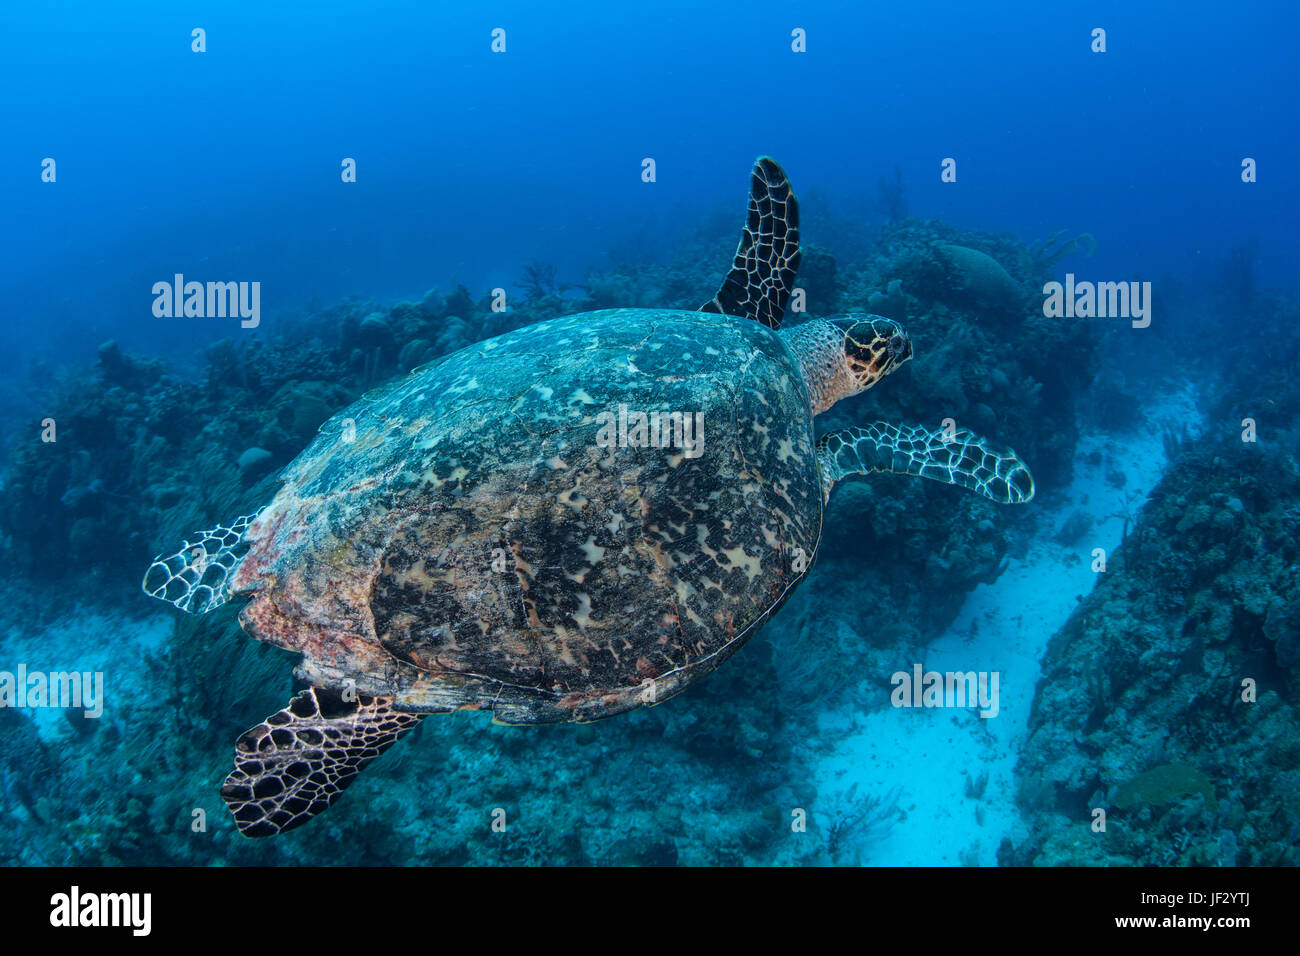 A Hawksbill sea turtle swims in the clear, blue water of the Caribbean Sea off the coast of Belize. This is an endangered - Stock Image